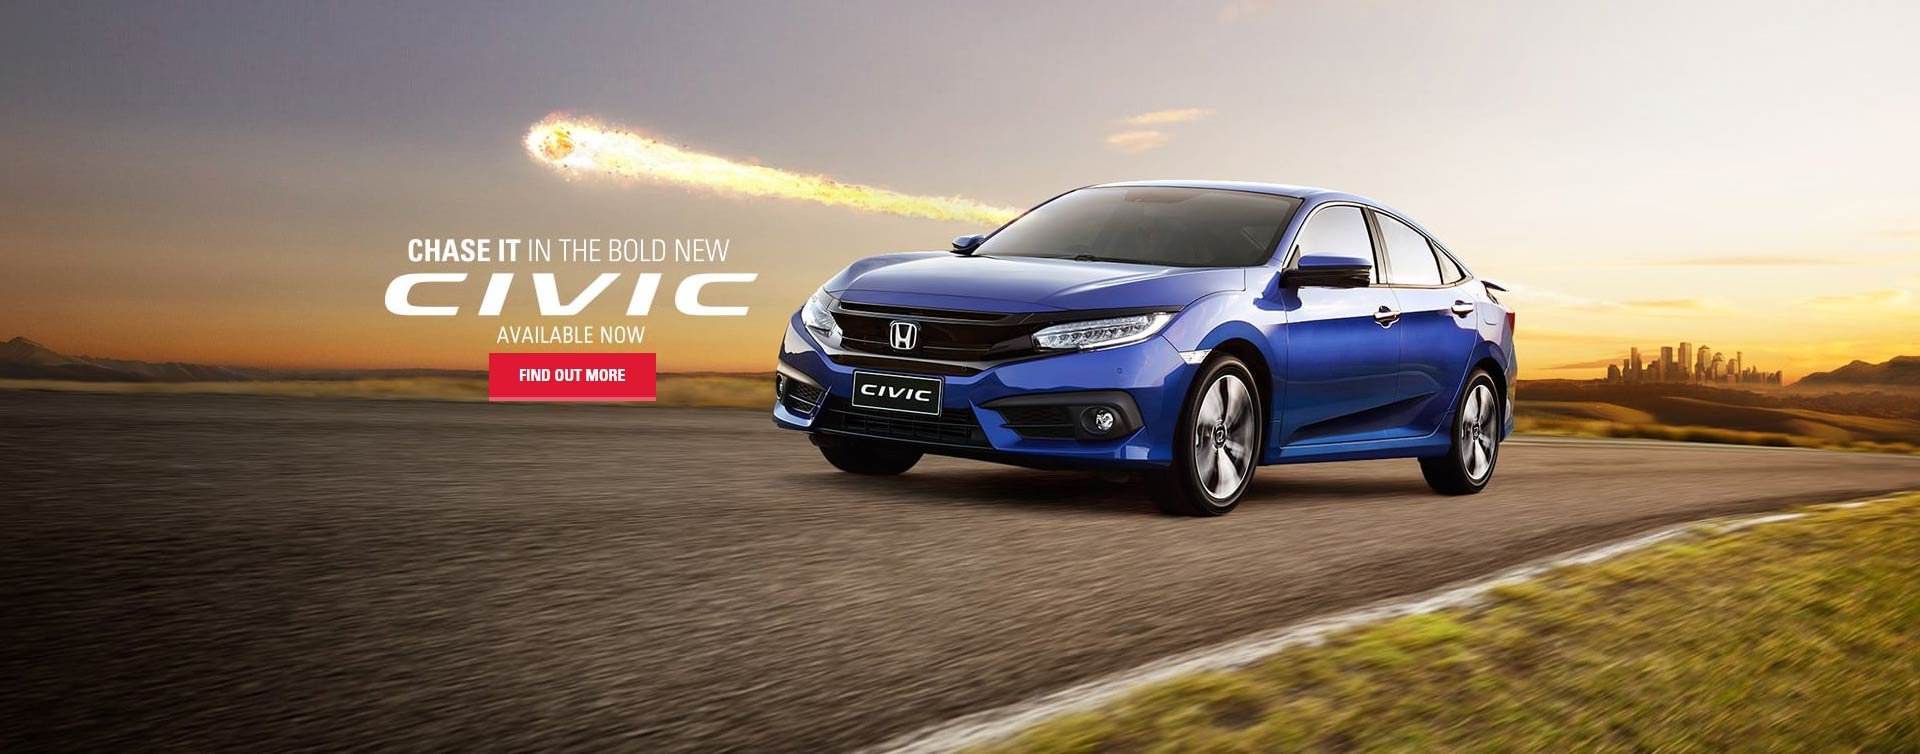 Chase it in the bold new Civic Sedan, available now at Northside Honda Brisbane.